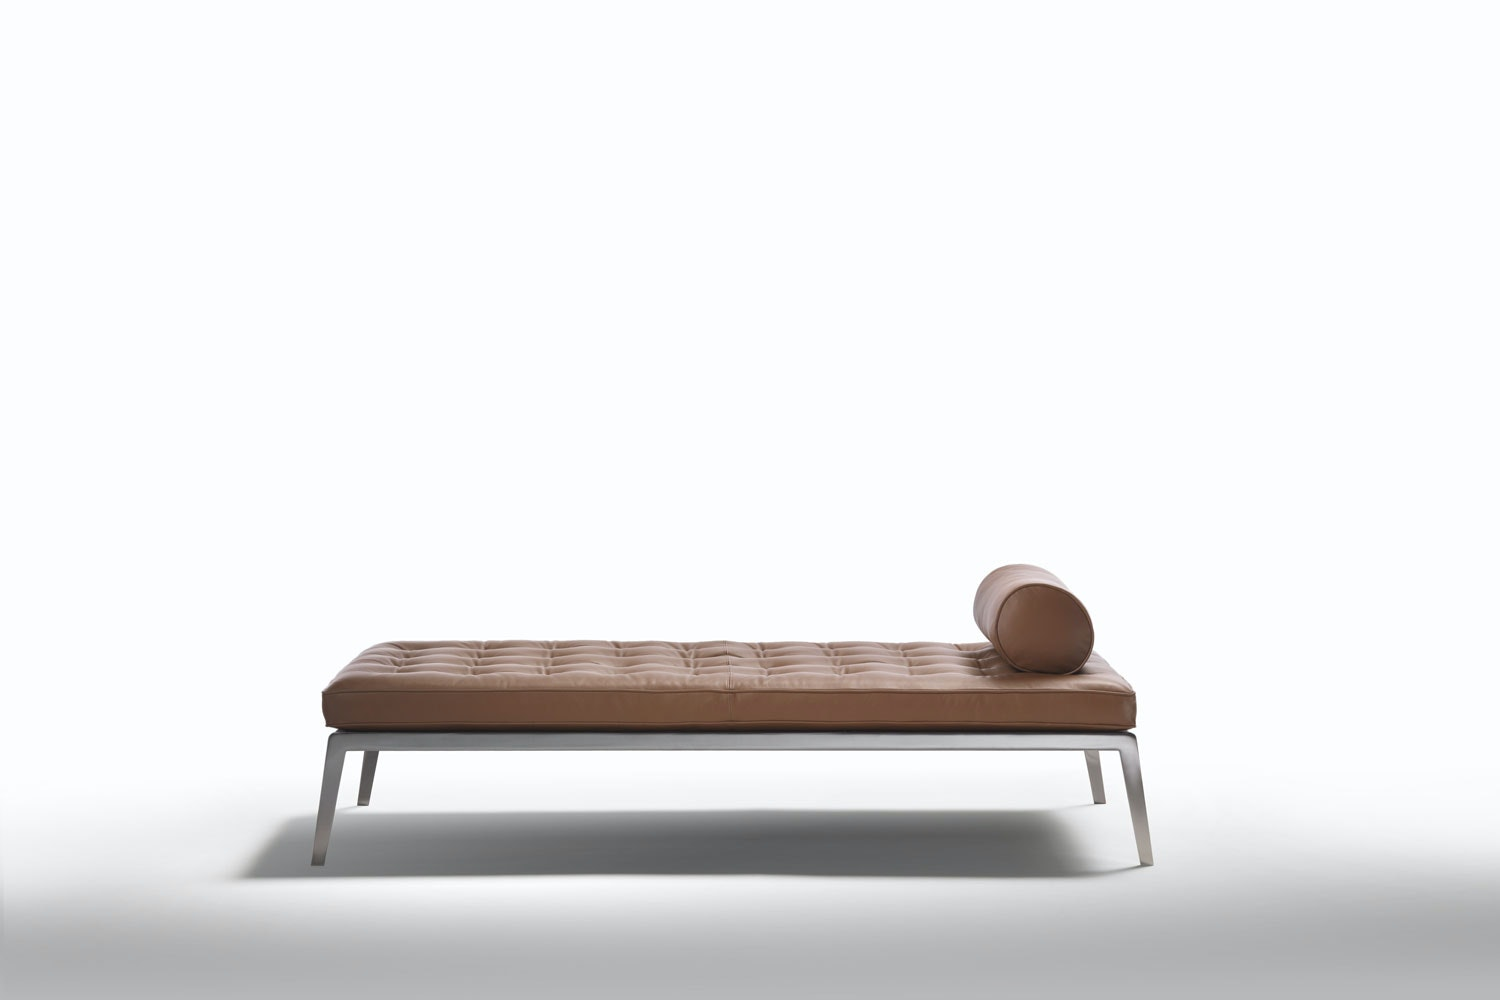 MAGI by Antonio Citterio for Flexform